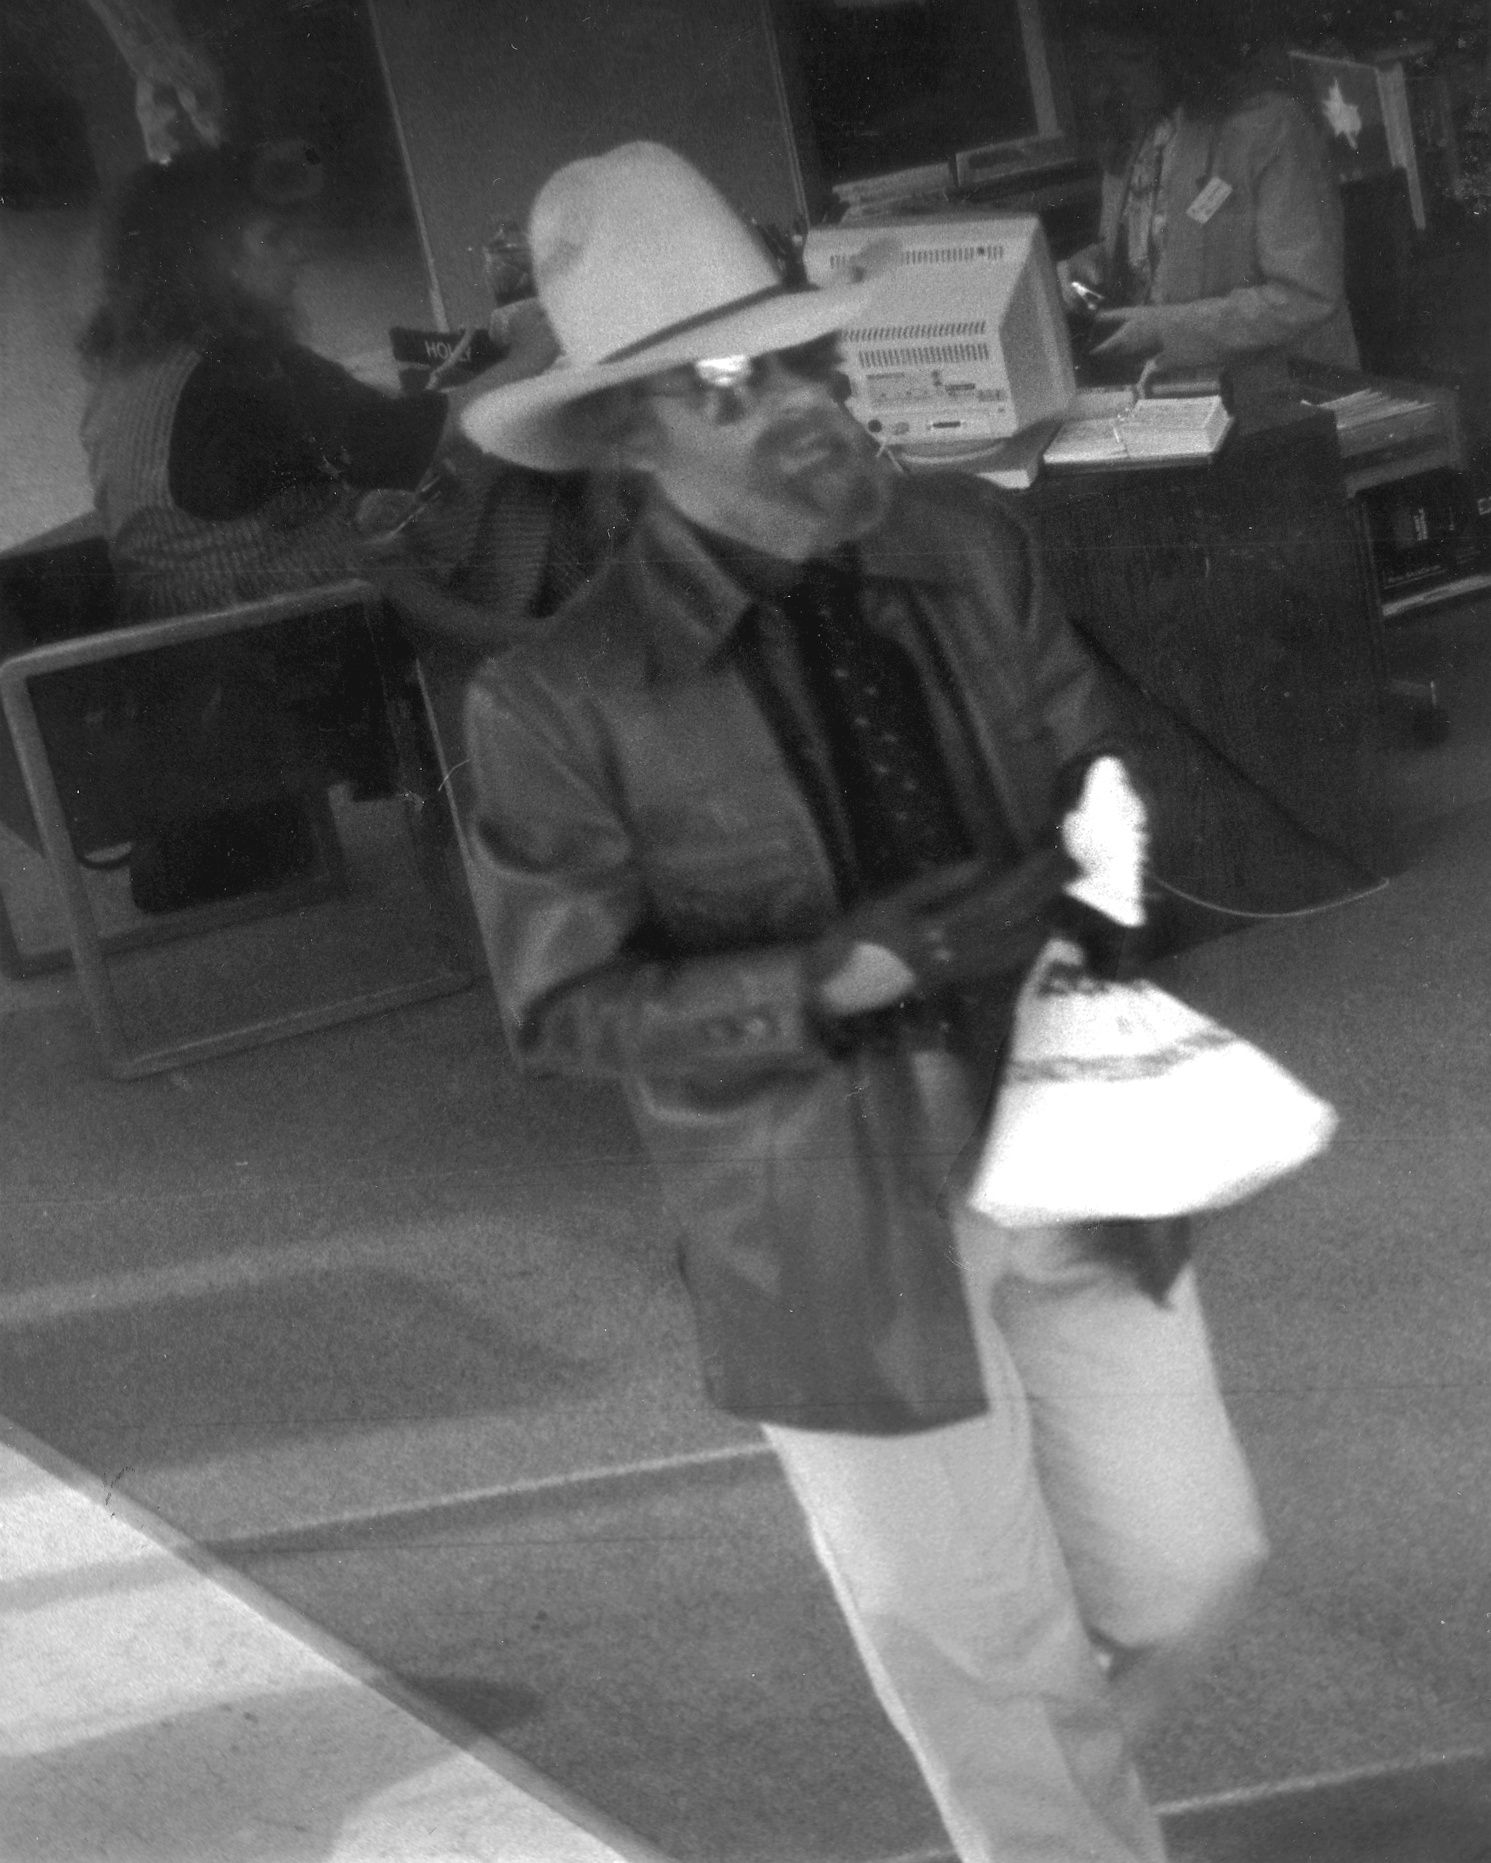 'Cowboy Bob' captured on security footage in 1992.